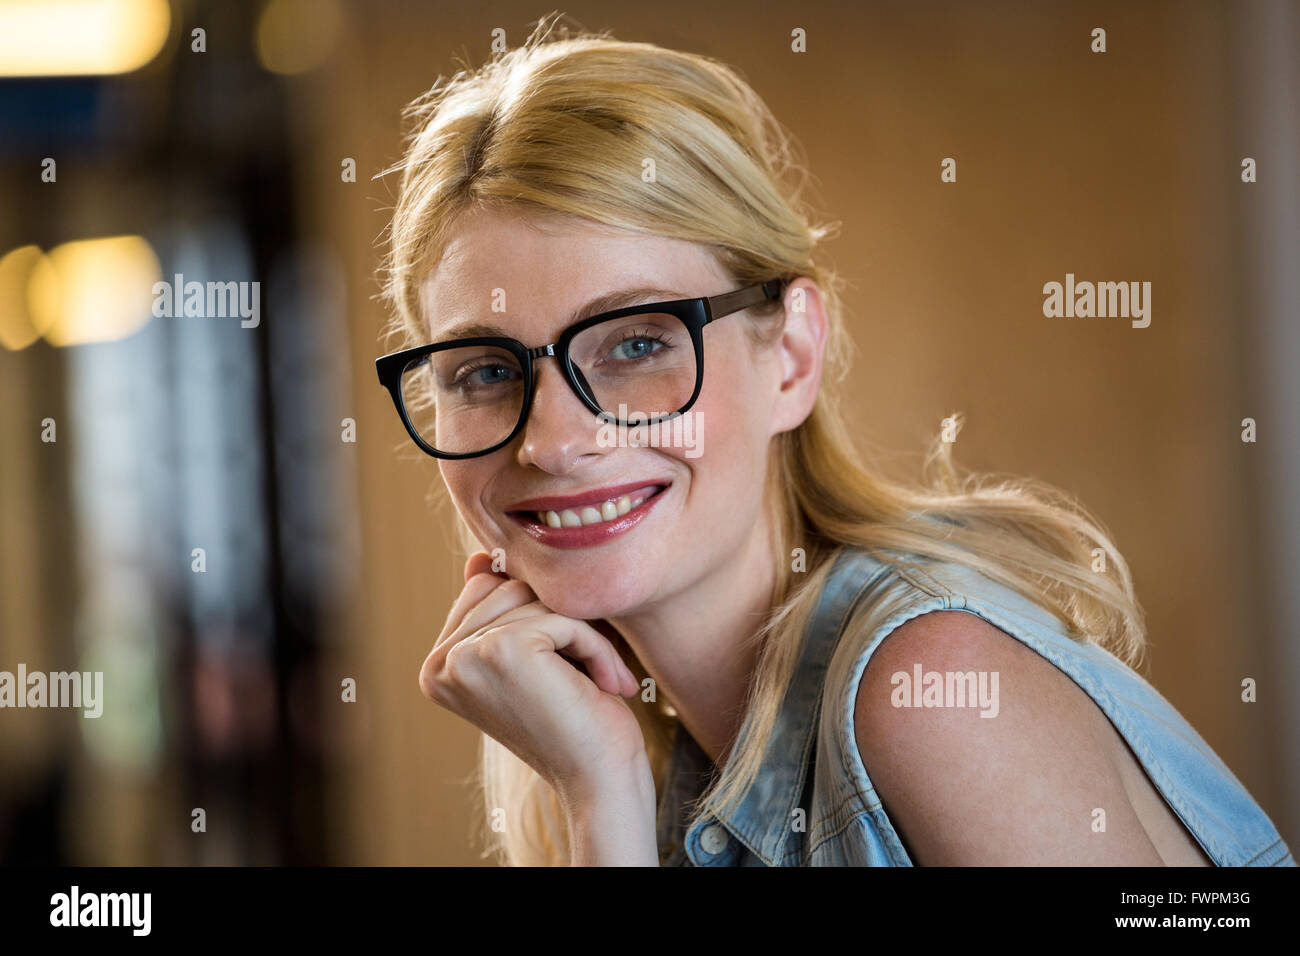 Beautiful woman in spectacle with hand on chin - Stock Image